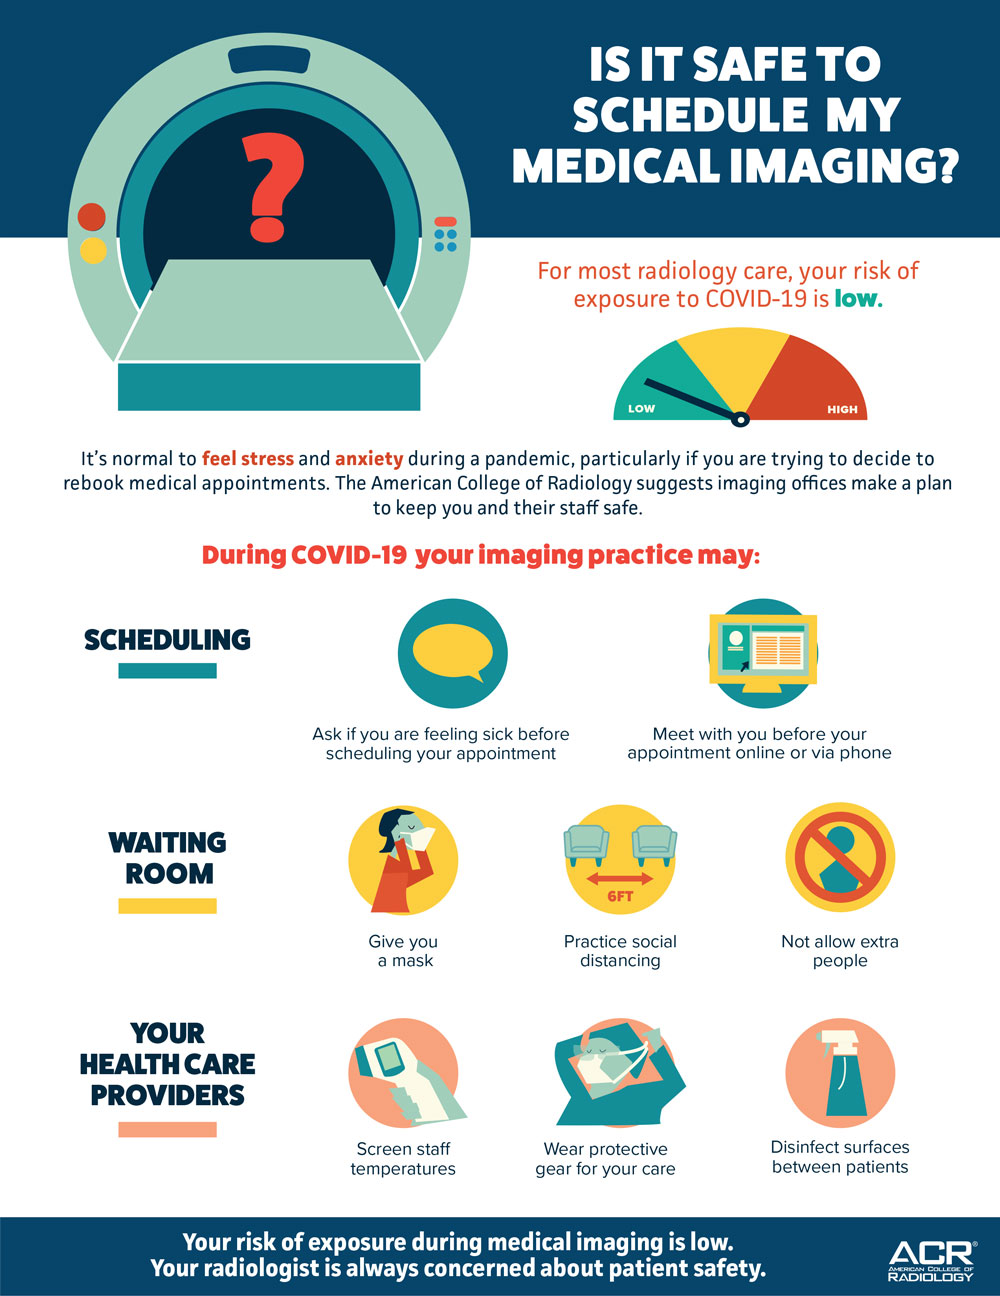 Is it safe to schedule my medical imaging?